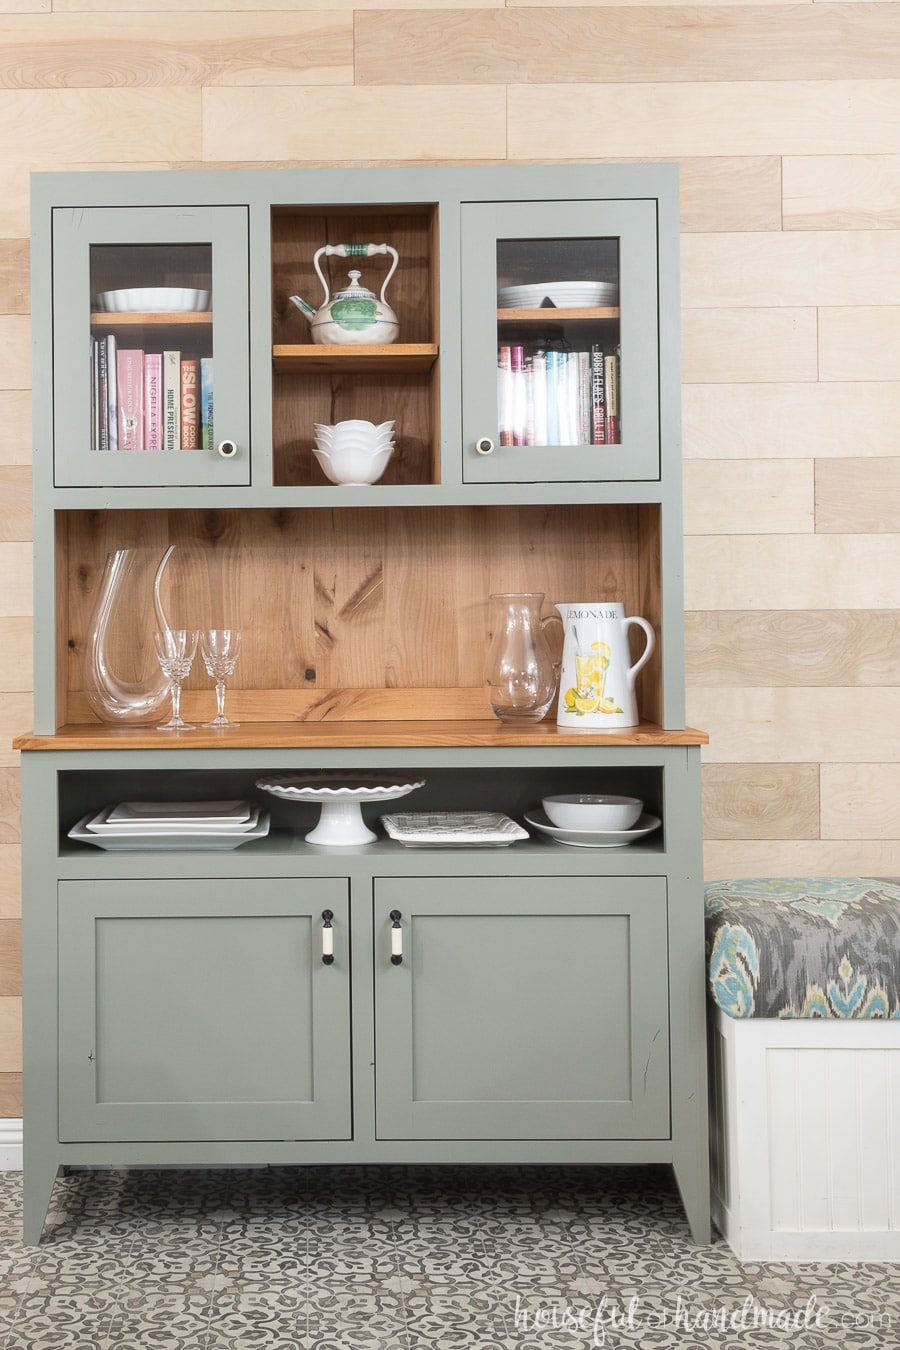 Gorgeous gray dining room hutch with natural knotty wood in the inside.  Lots of storage